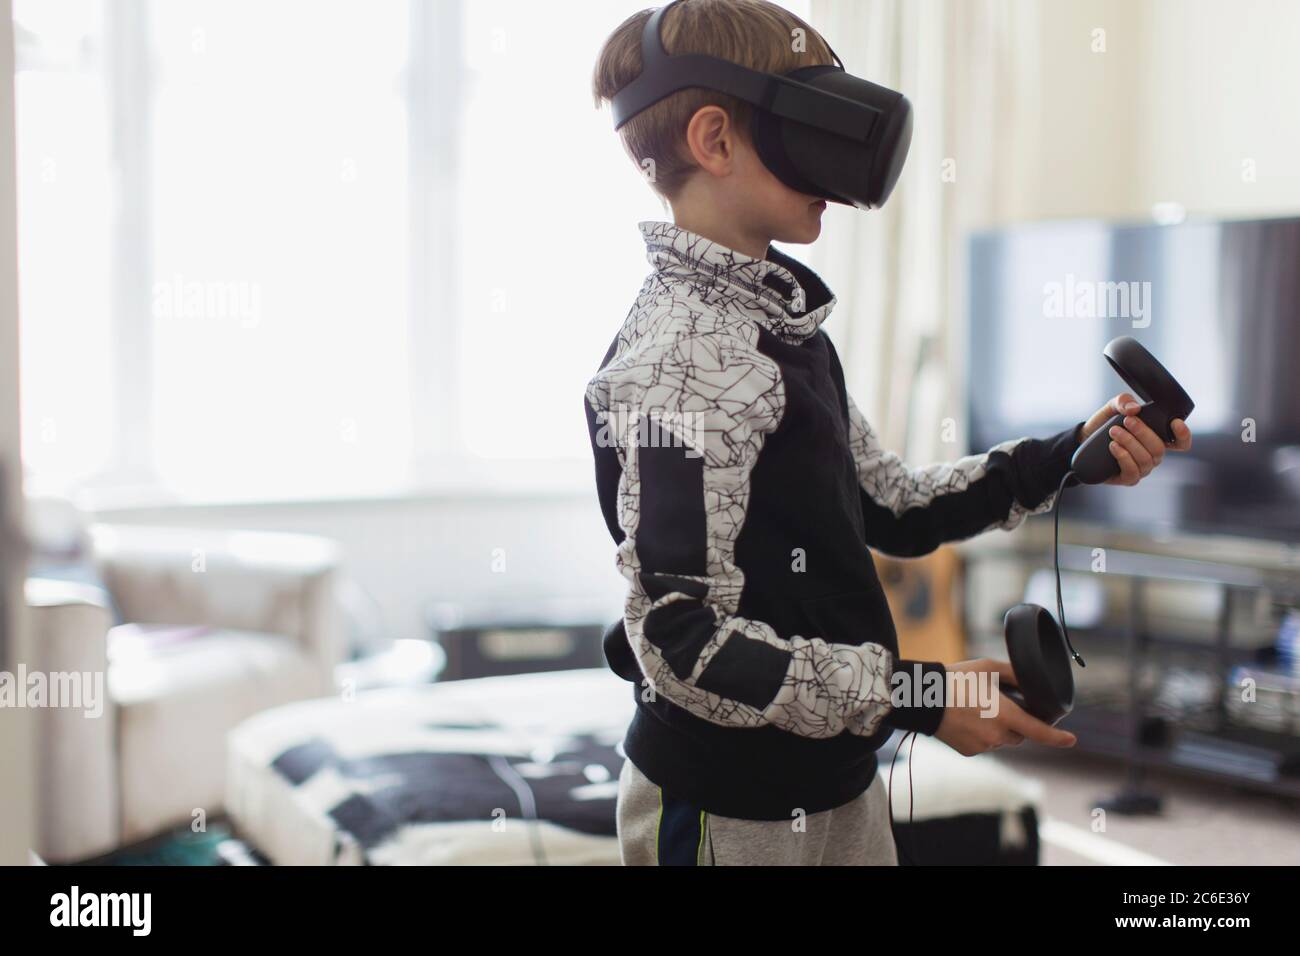 Boy playing video game with VRS goggles in living room Stock Photo